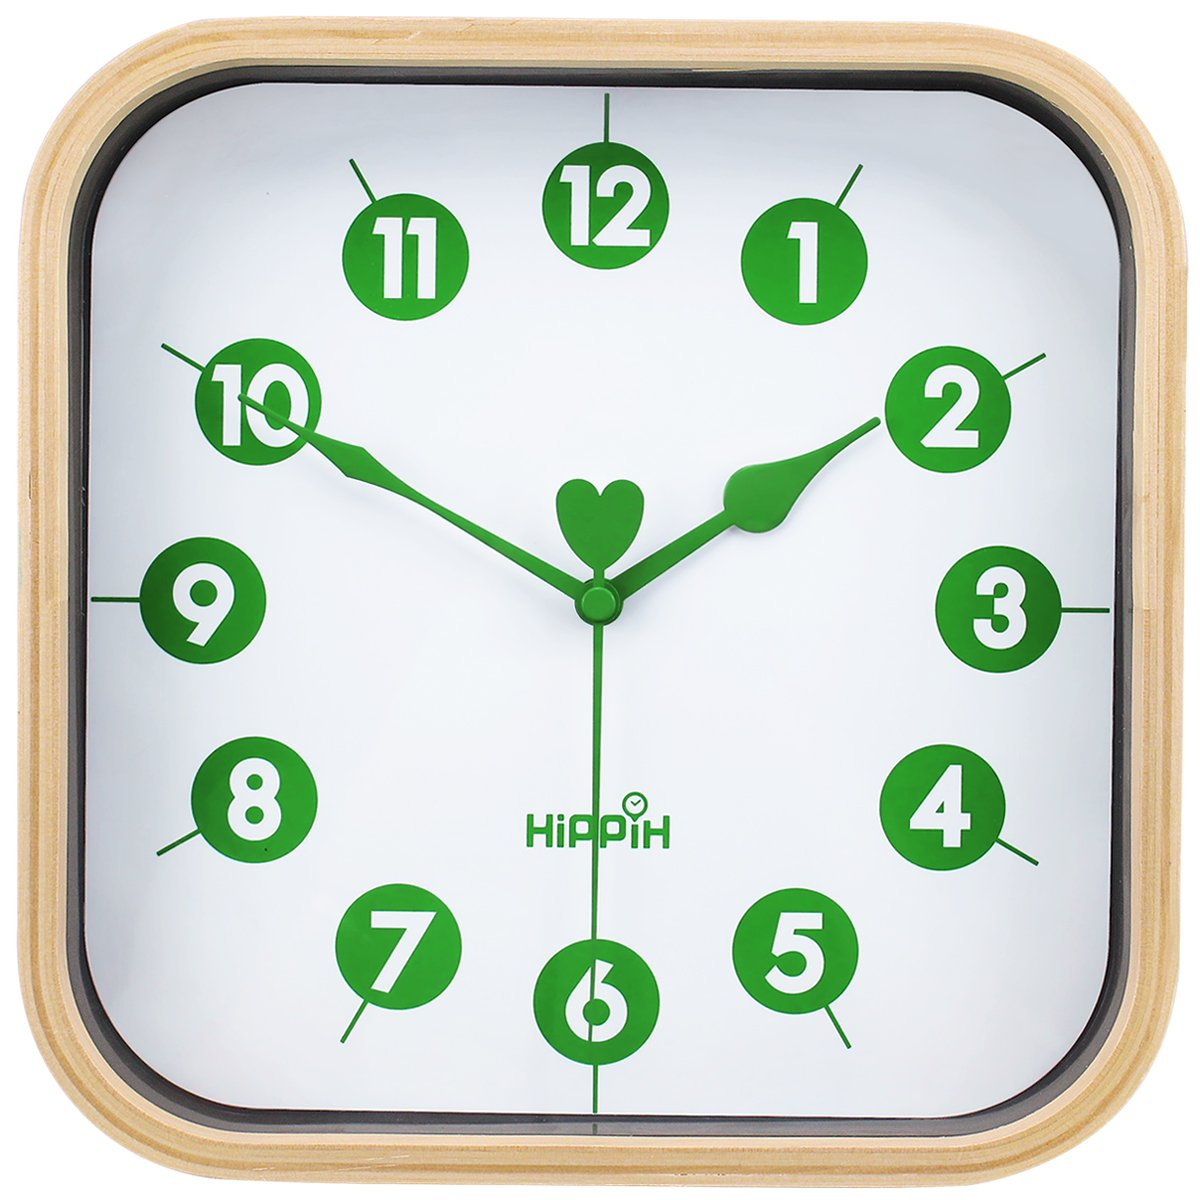 HIPPIH Wall Clocks Battery Operated Non Ticking 9 inch Digital Quiet Sweep Decorative Vintage Wooden Clocks for Bedroom Office Classroom Living Room